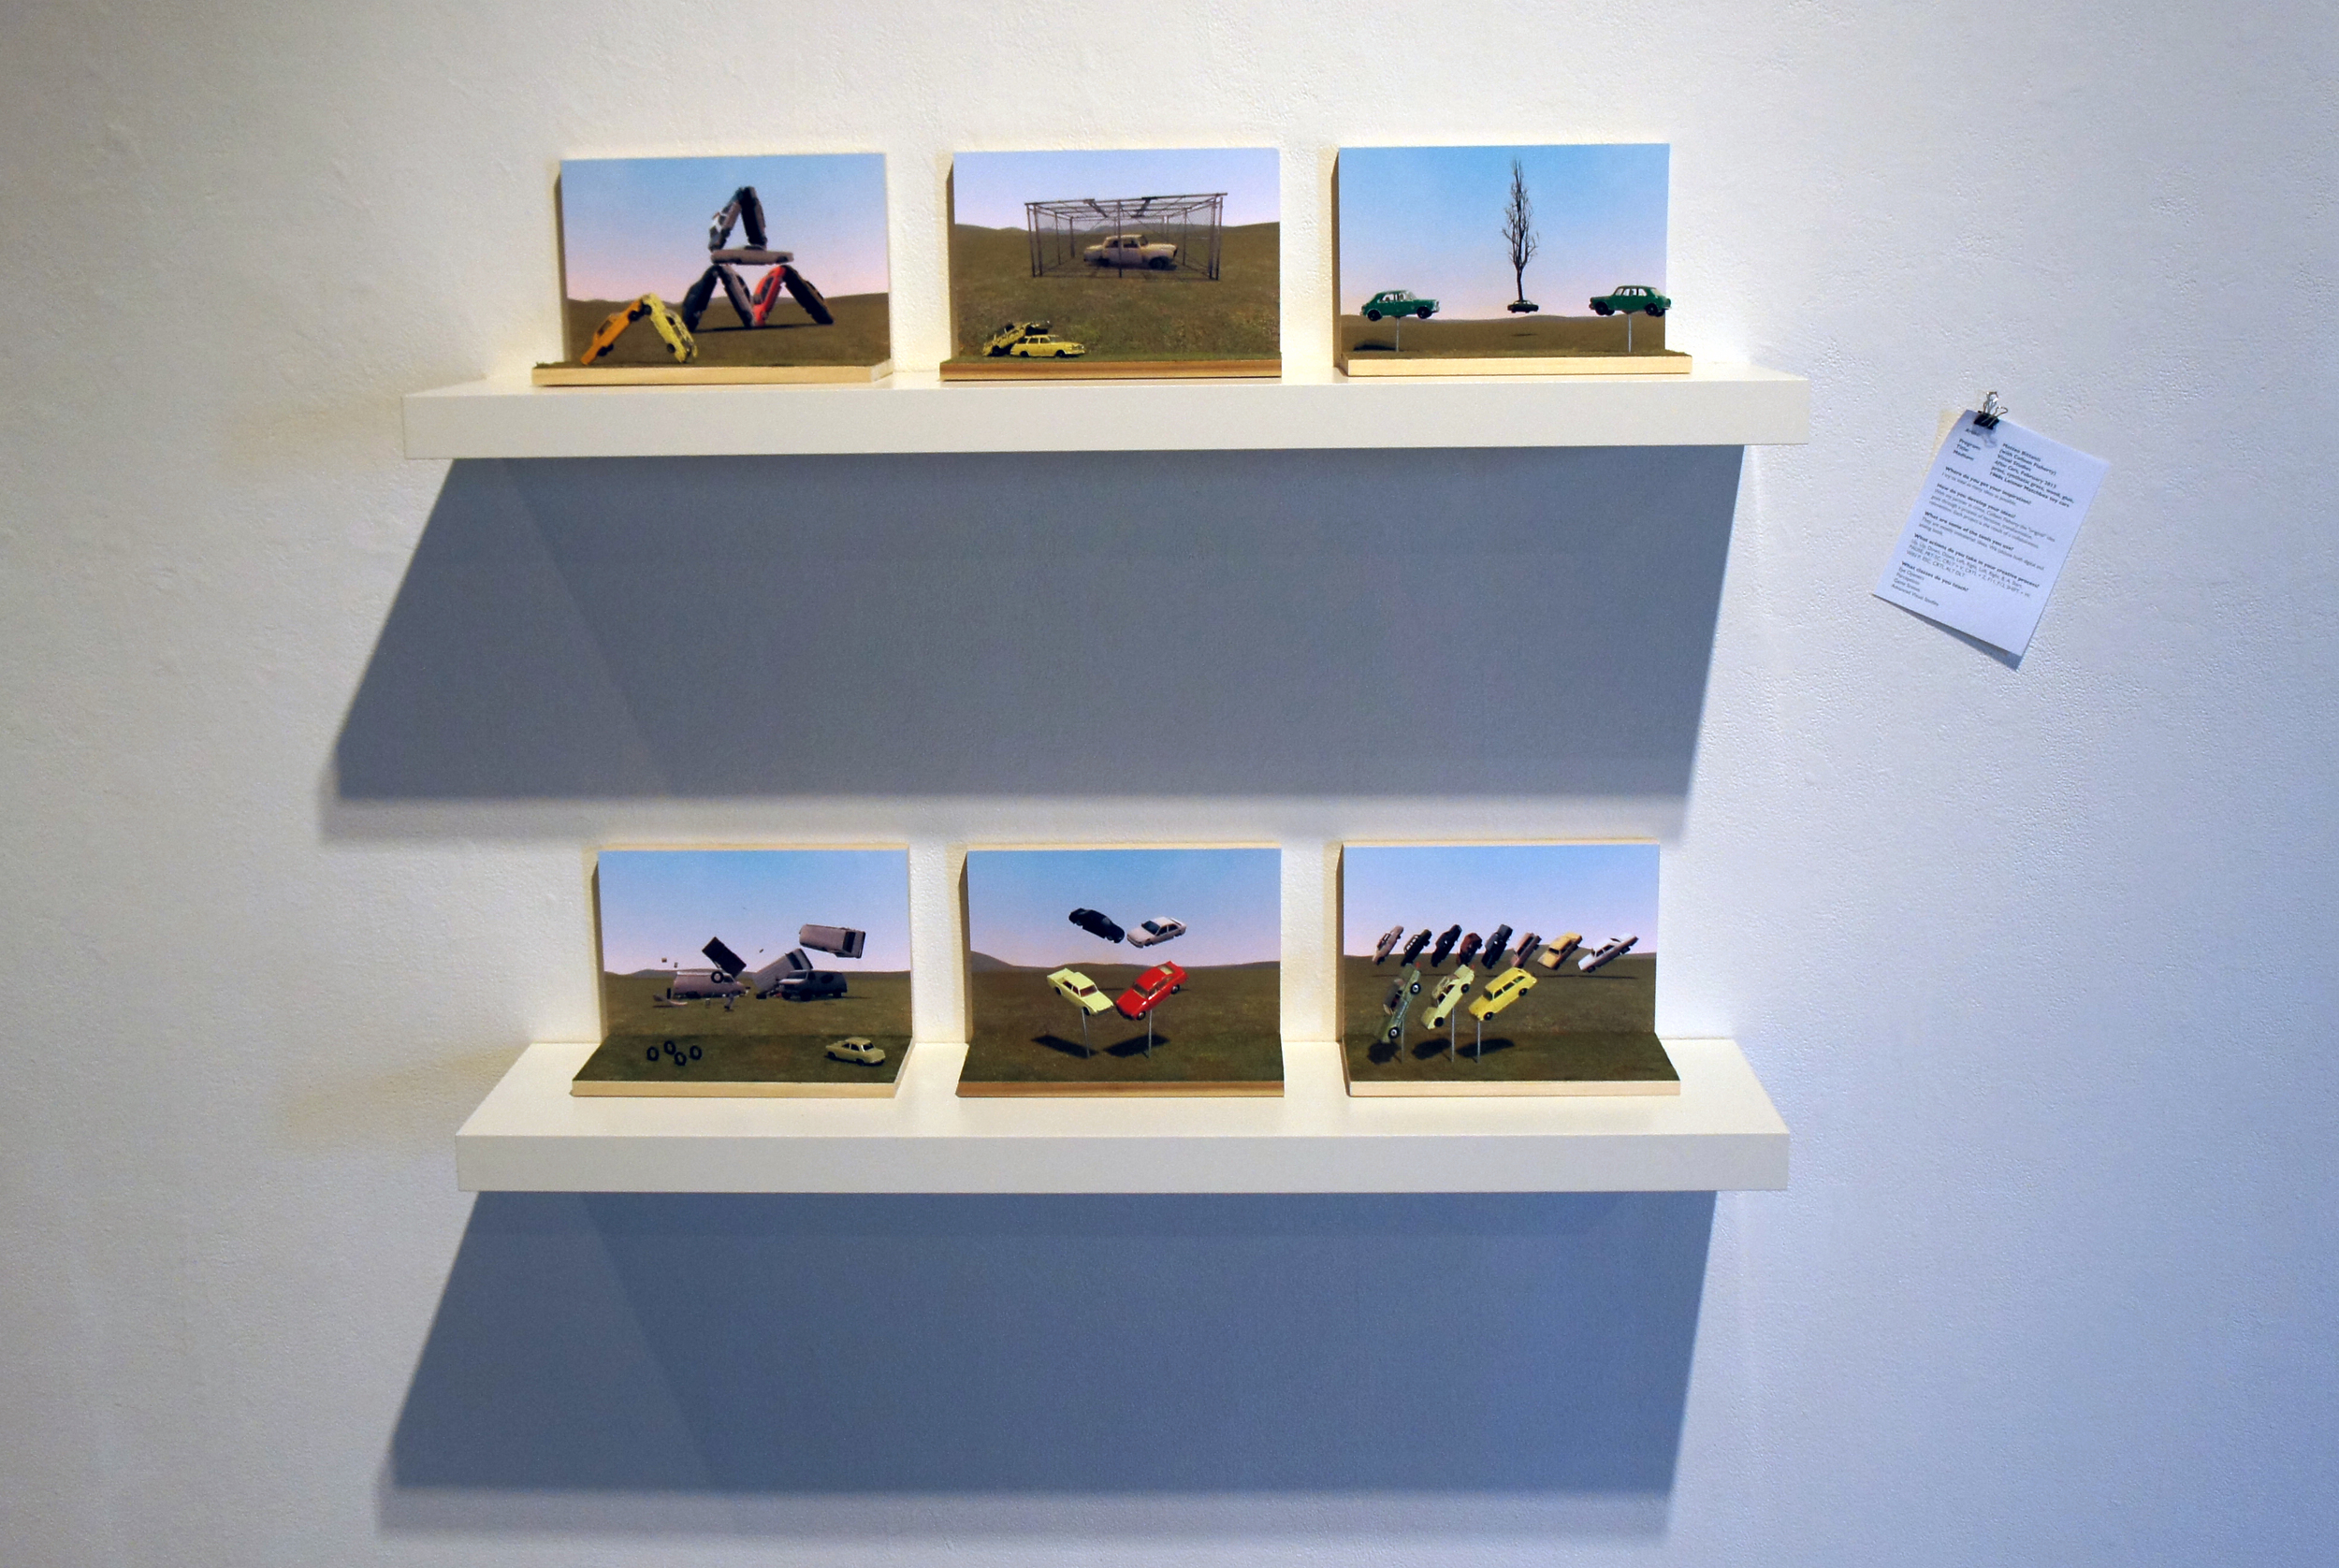 Coll.eo, AFTER CARS (2012) installation view